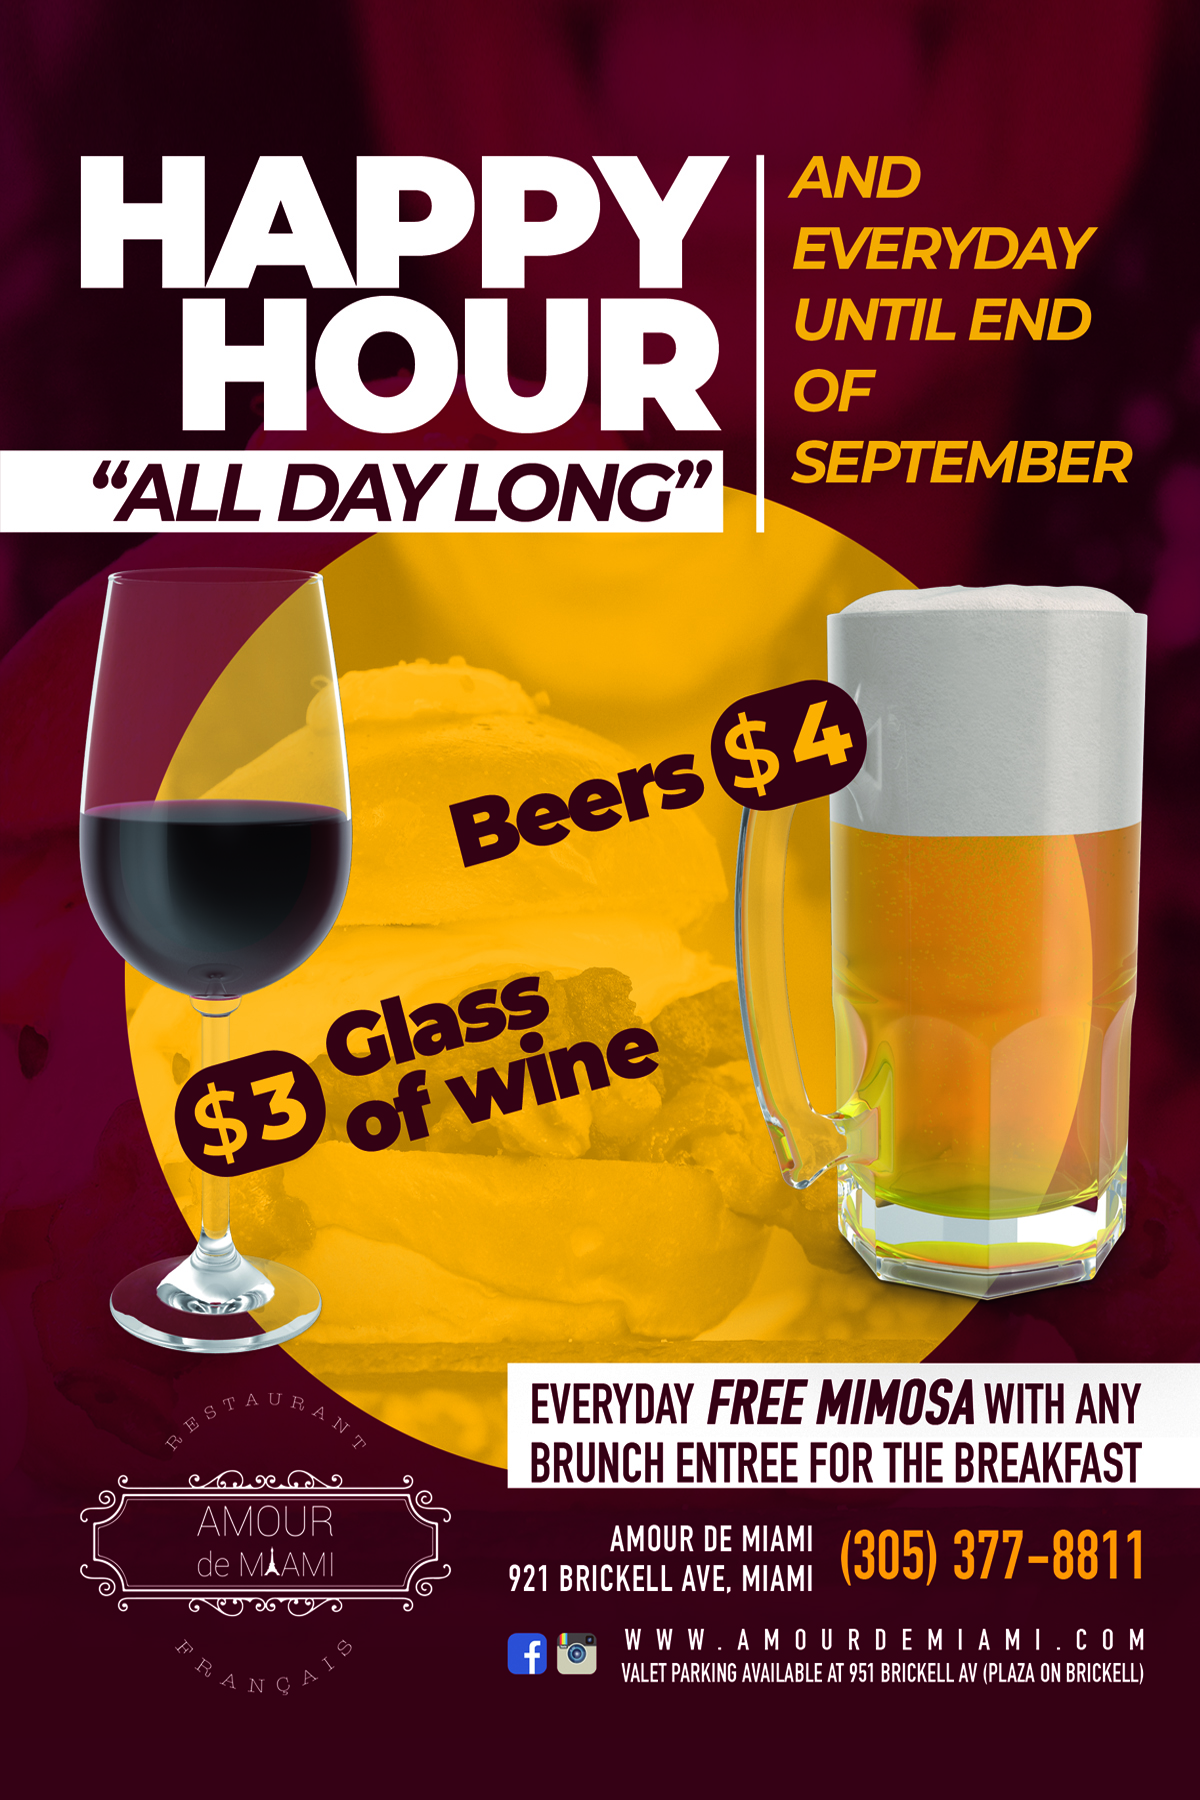 Happy Hour All Day Long. and everyday until the end of September. Beers $4.00. Glass of wine $3.00. Everyday Free Mimosa with any brunch entree for the breakfast.